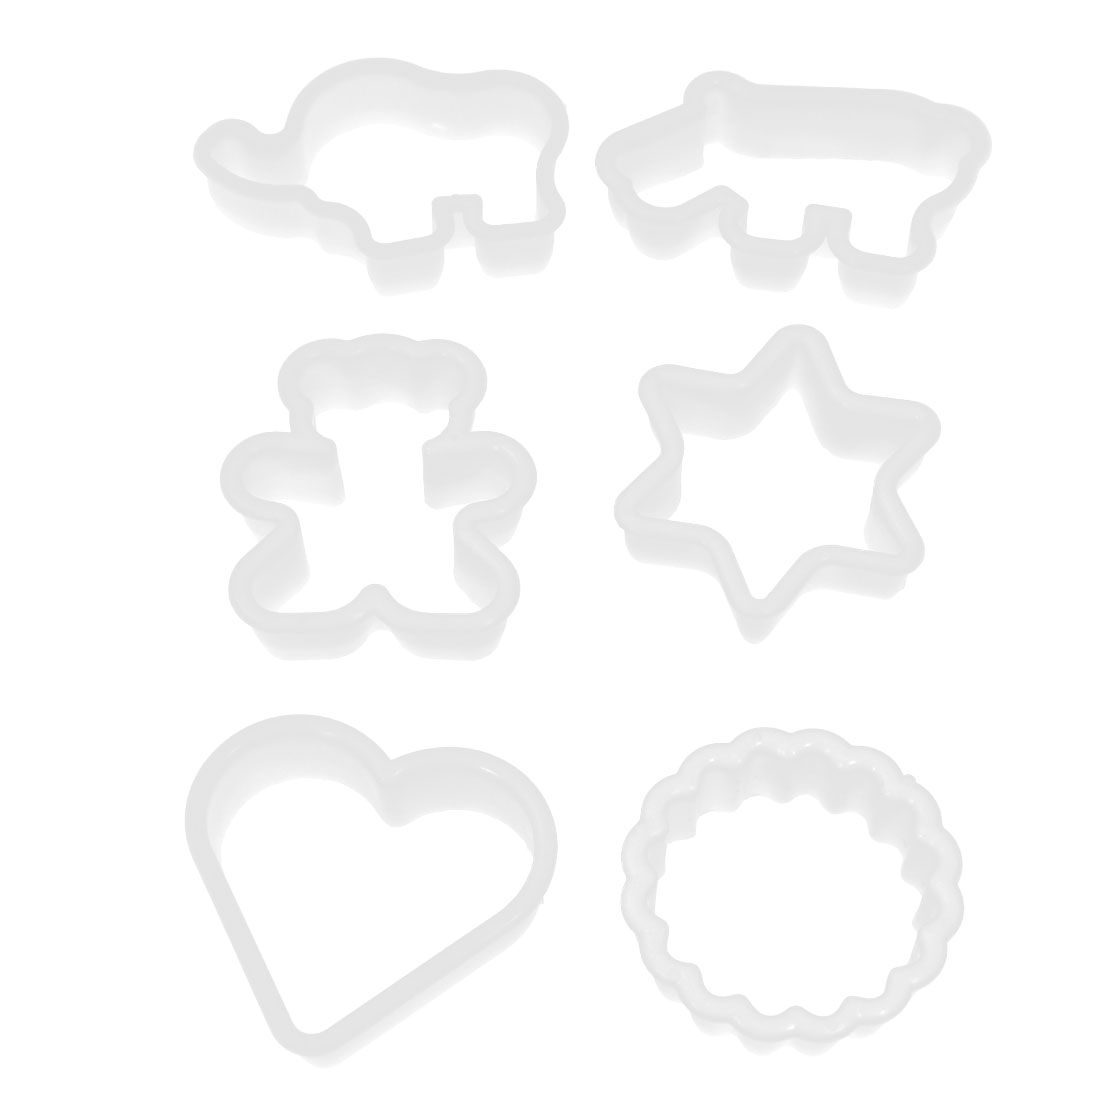 6 in 1 Sketchy Animal Geometric Shape White Plastic Cake Cookie Cutters